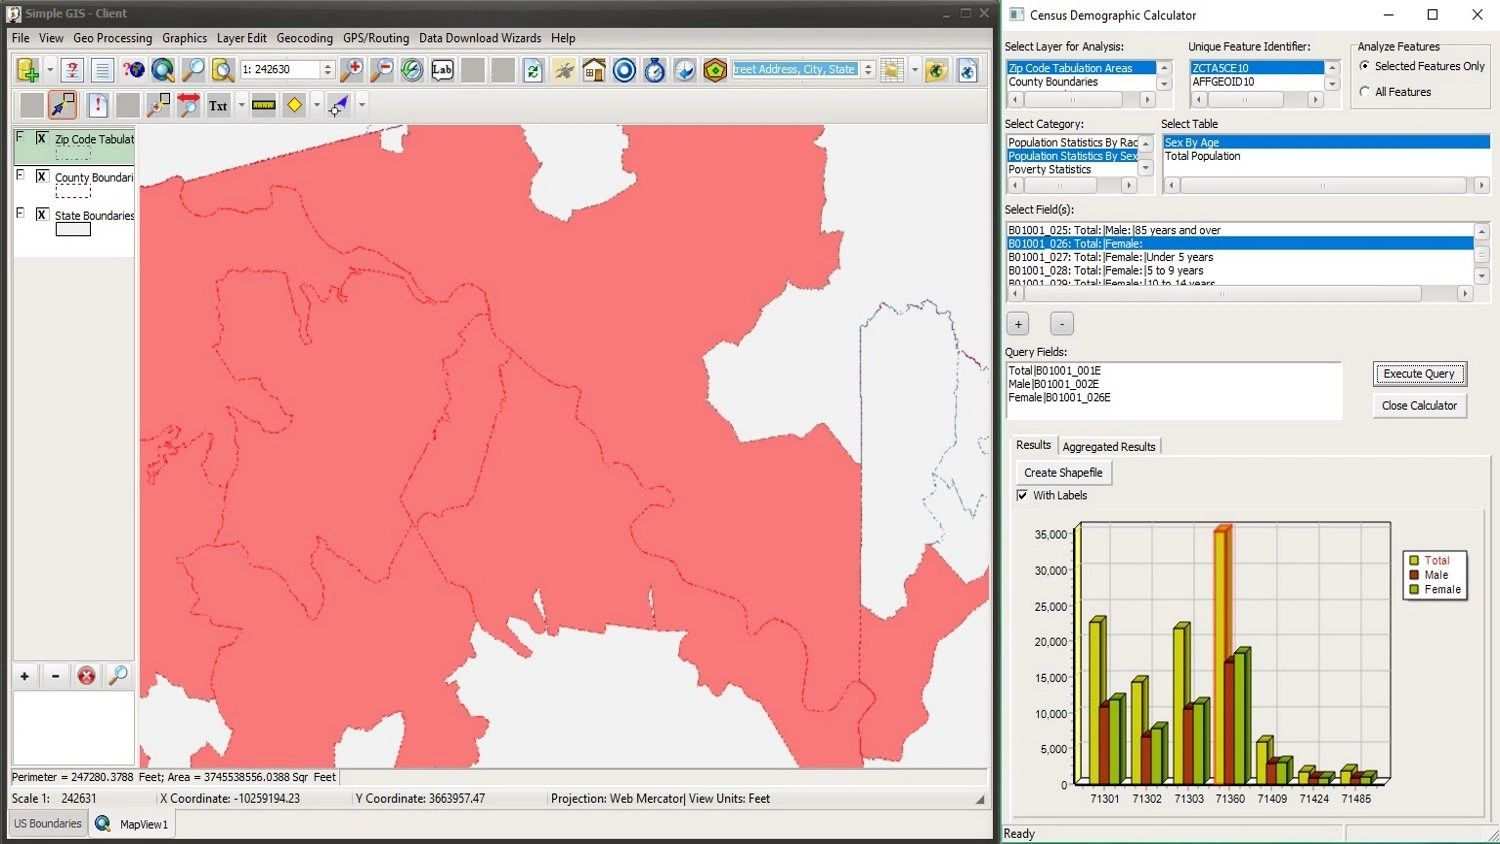 Querying US Census Demographic Data in Simple GIS Client